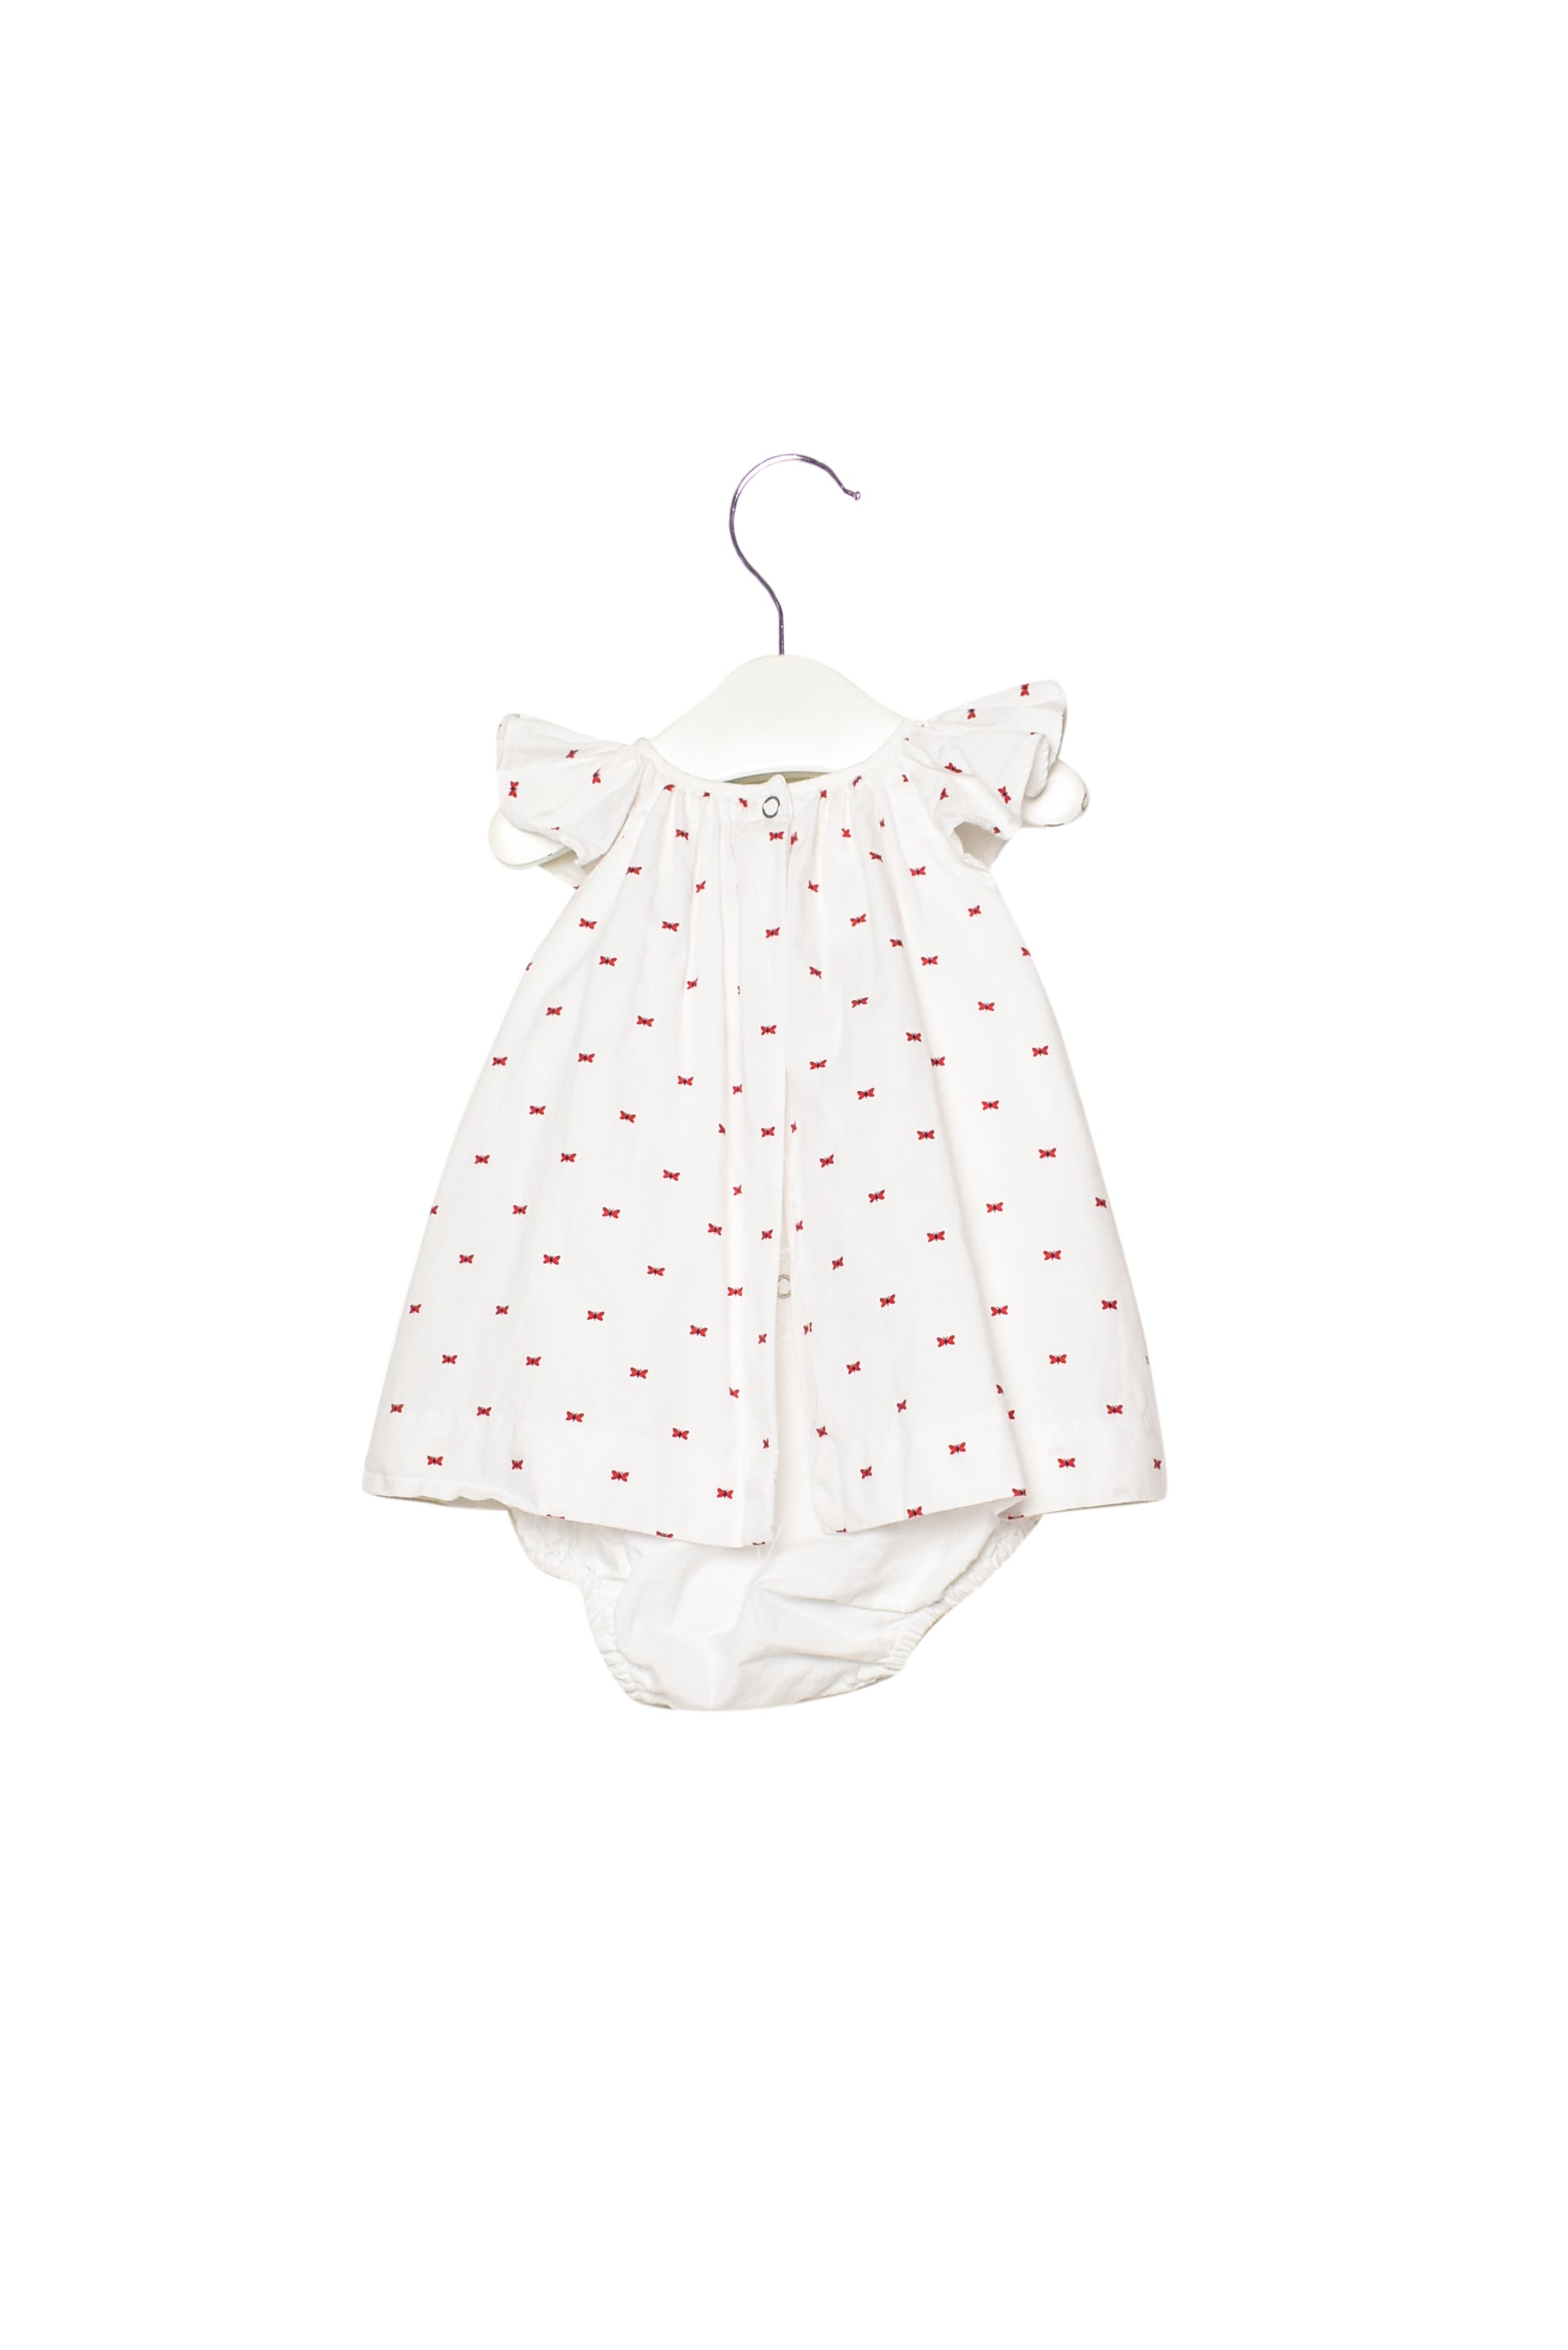 10012020 Jacadi Baby ~ Romper Dress 6M at Retykle